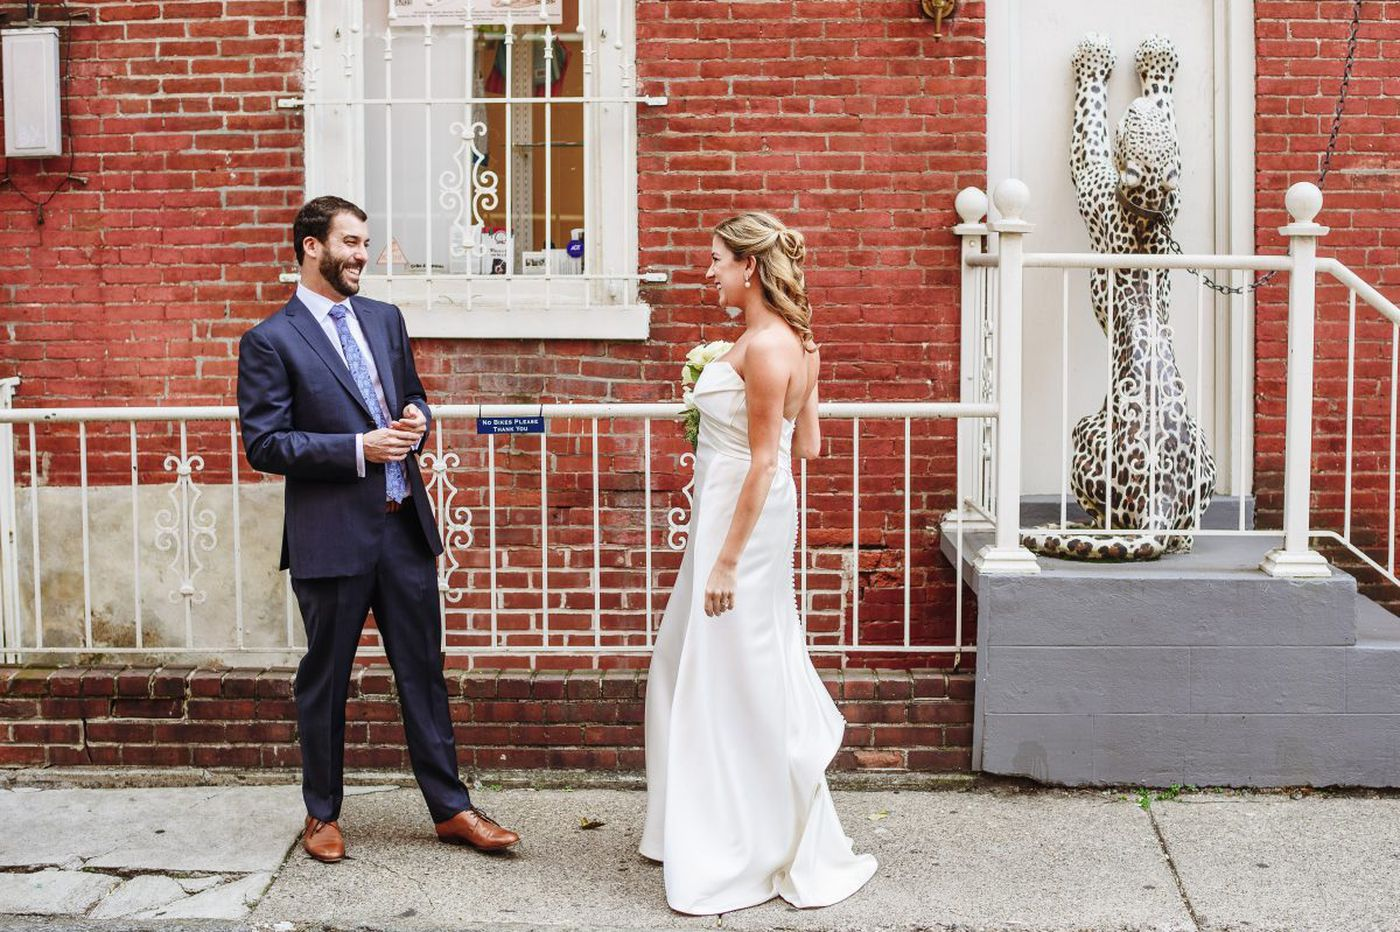 Philly weddings: Meredith Bush and Aaron Brill